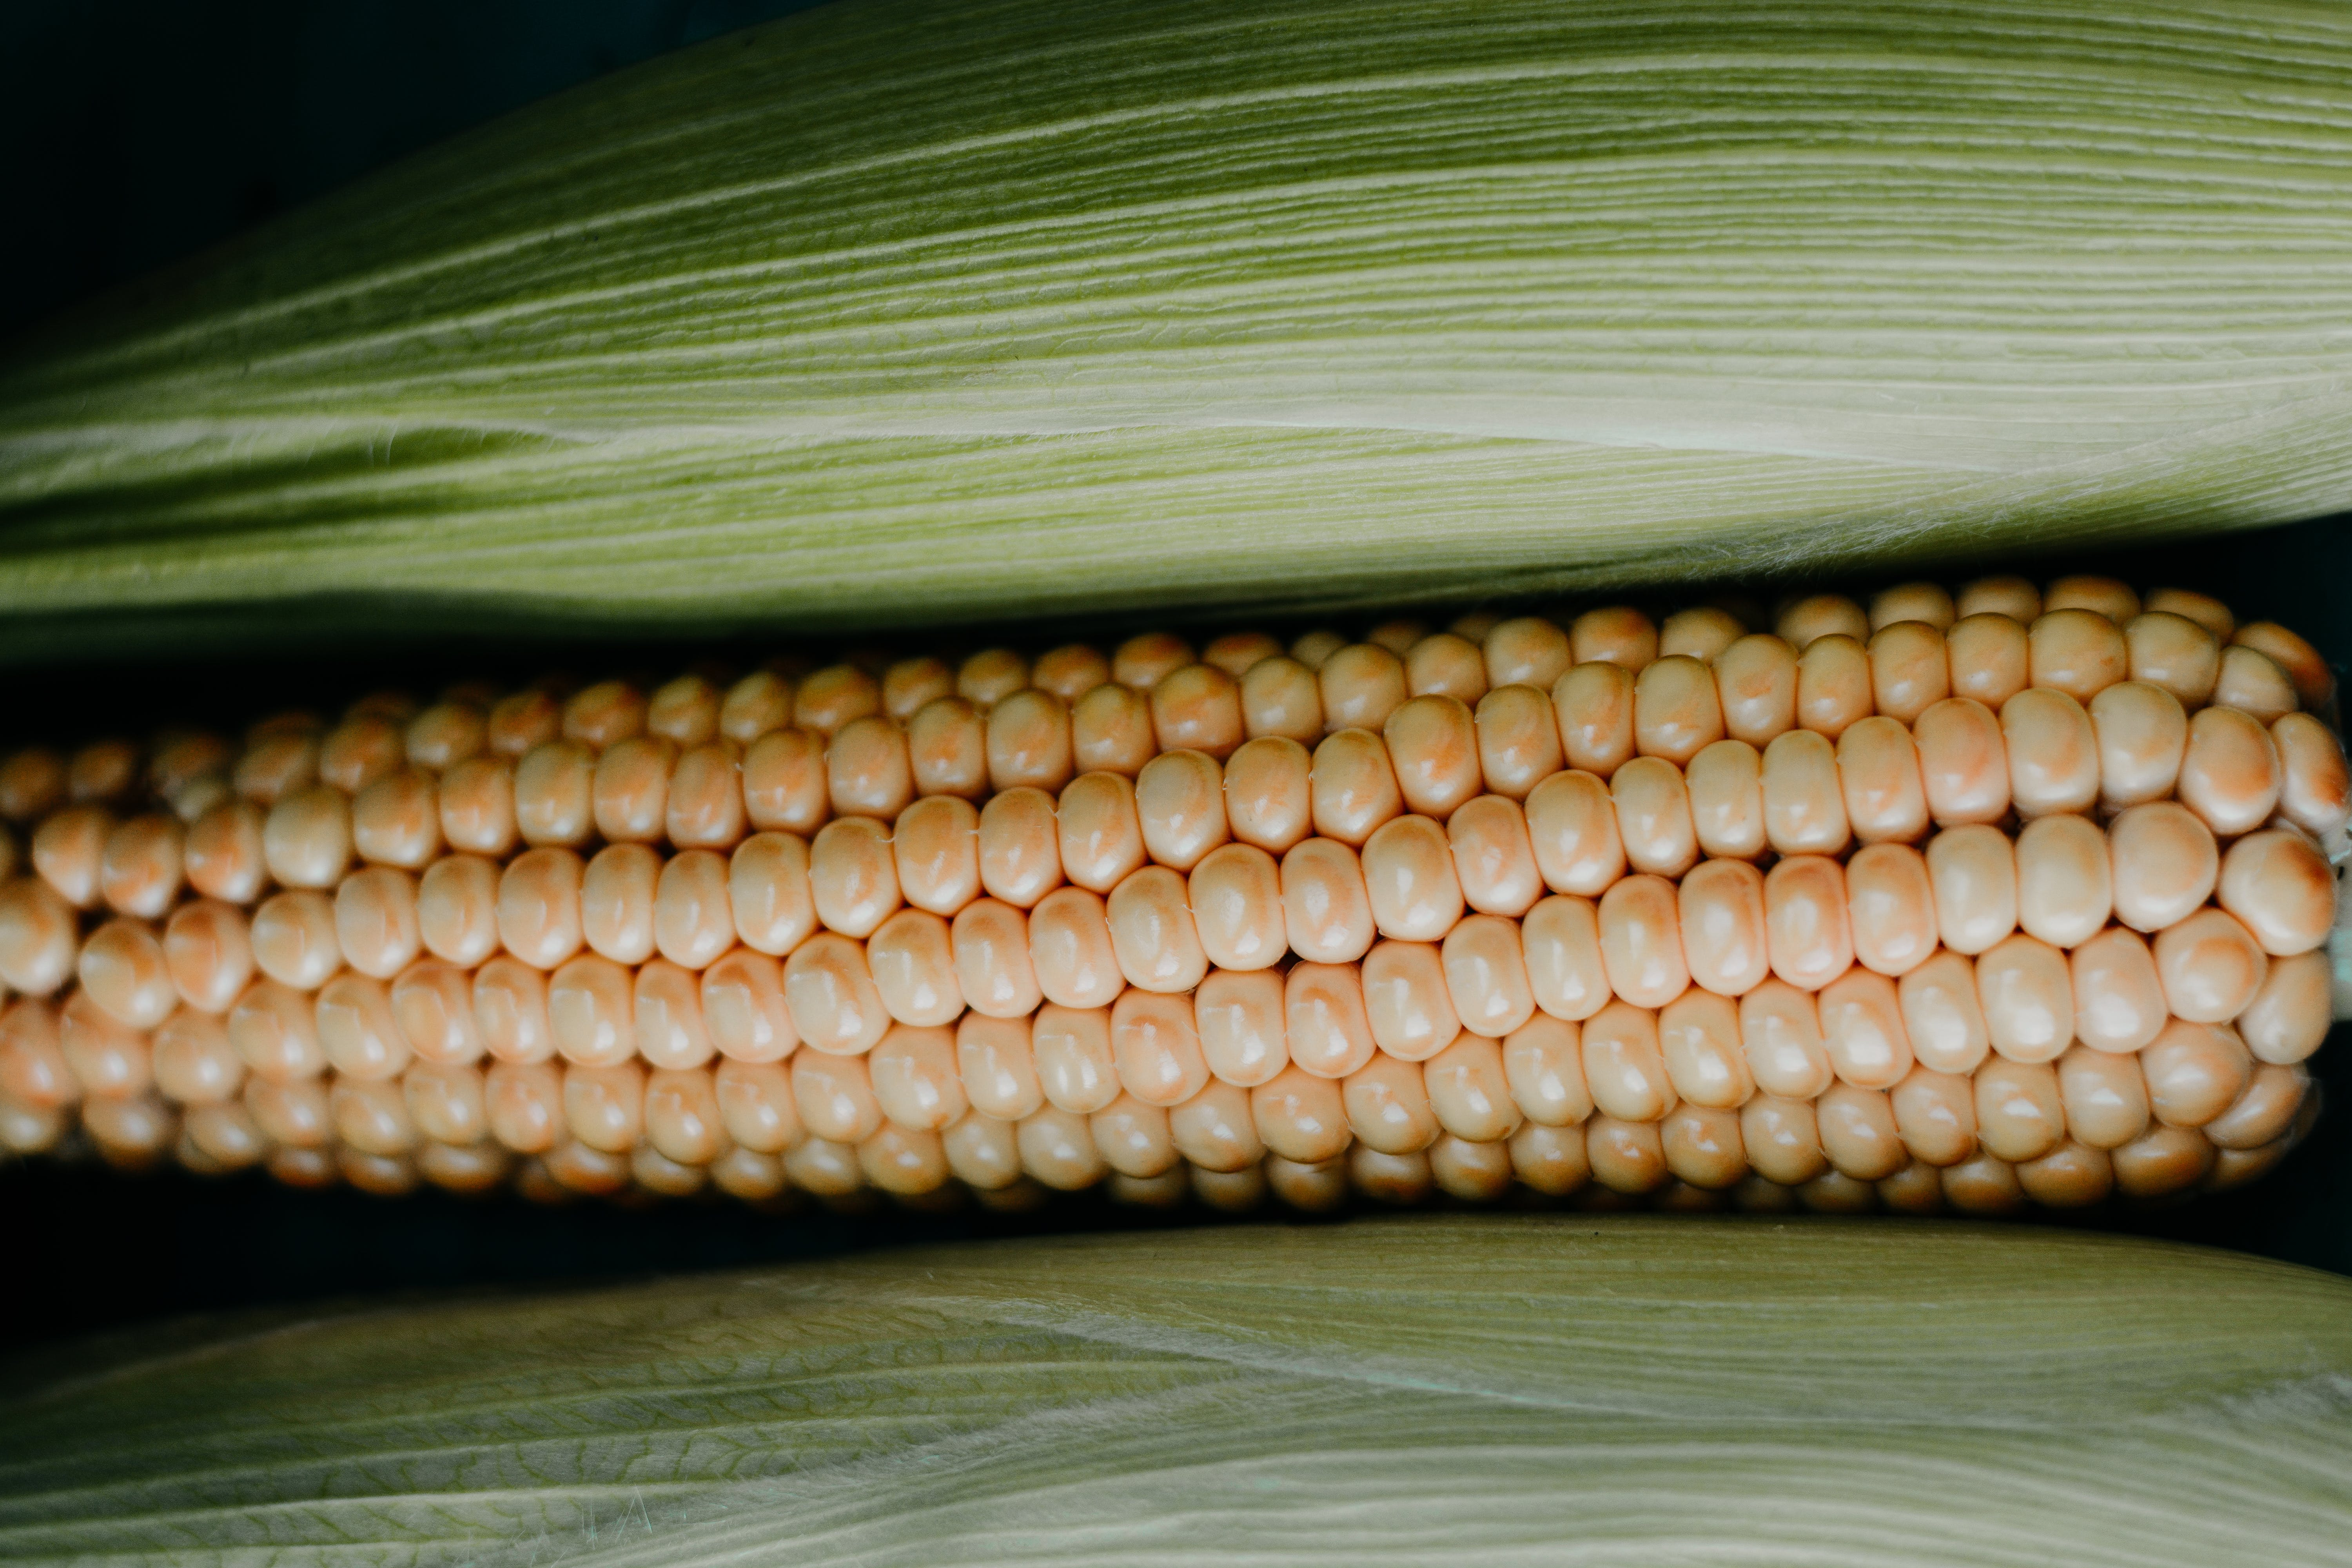 Close-up Photo of Corn